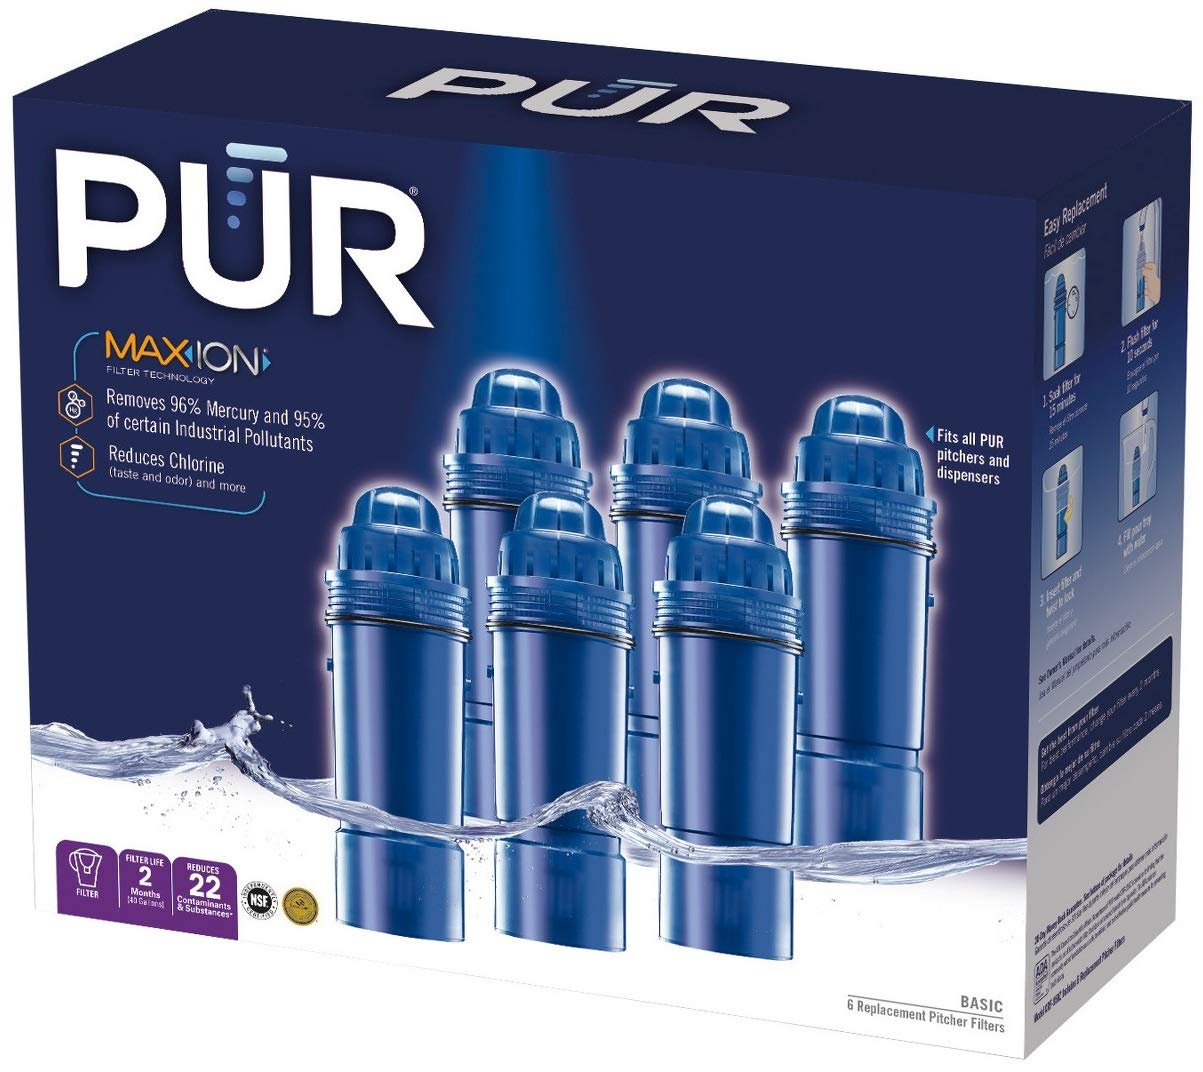 PUR Water Filters Provide Up to 240 Gallons of Clean Water CRF-950Z   Fits Any Pitcher Replacement or Dispensers (PACK OF 6)